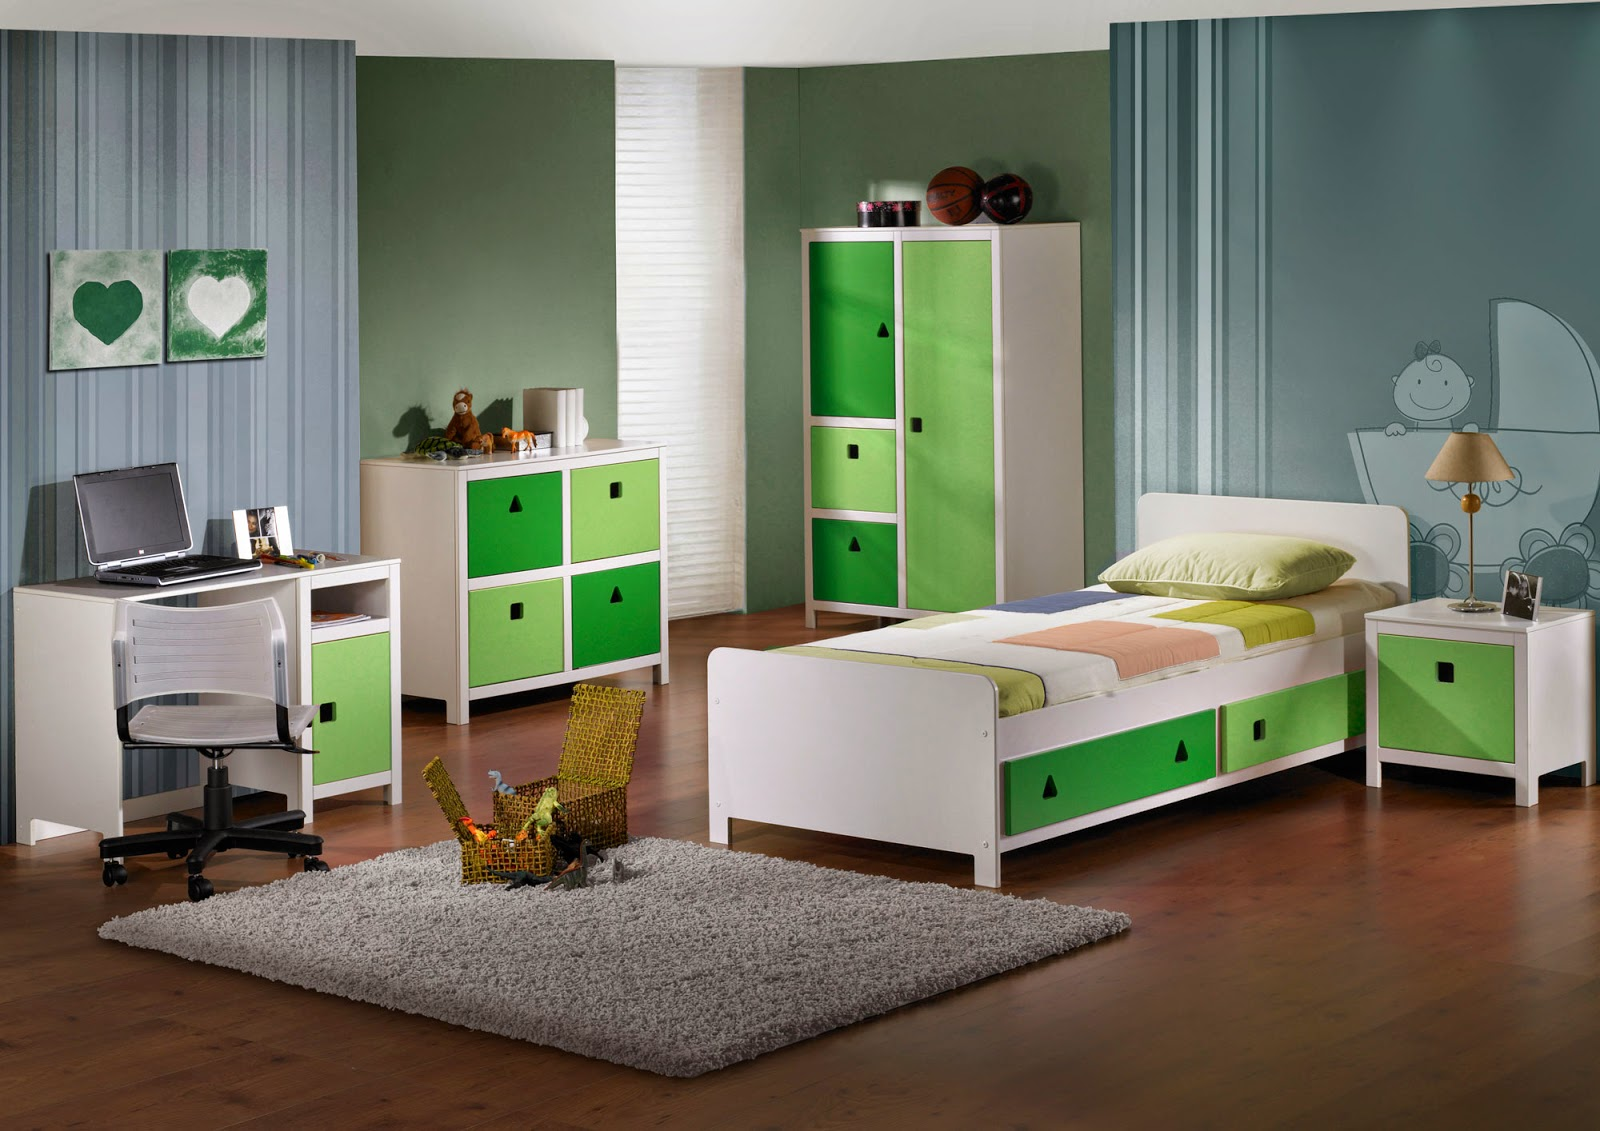 Green boys bedroom ideas - Wonderfull And Amazing Cool Rooms For Boys Design Ideas Images Gallery